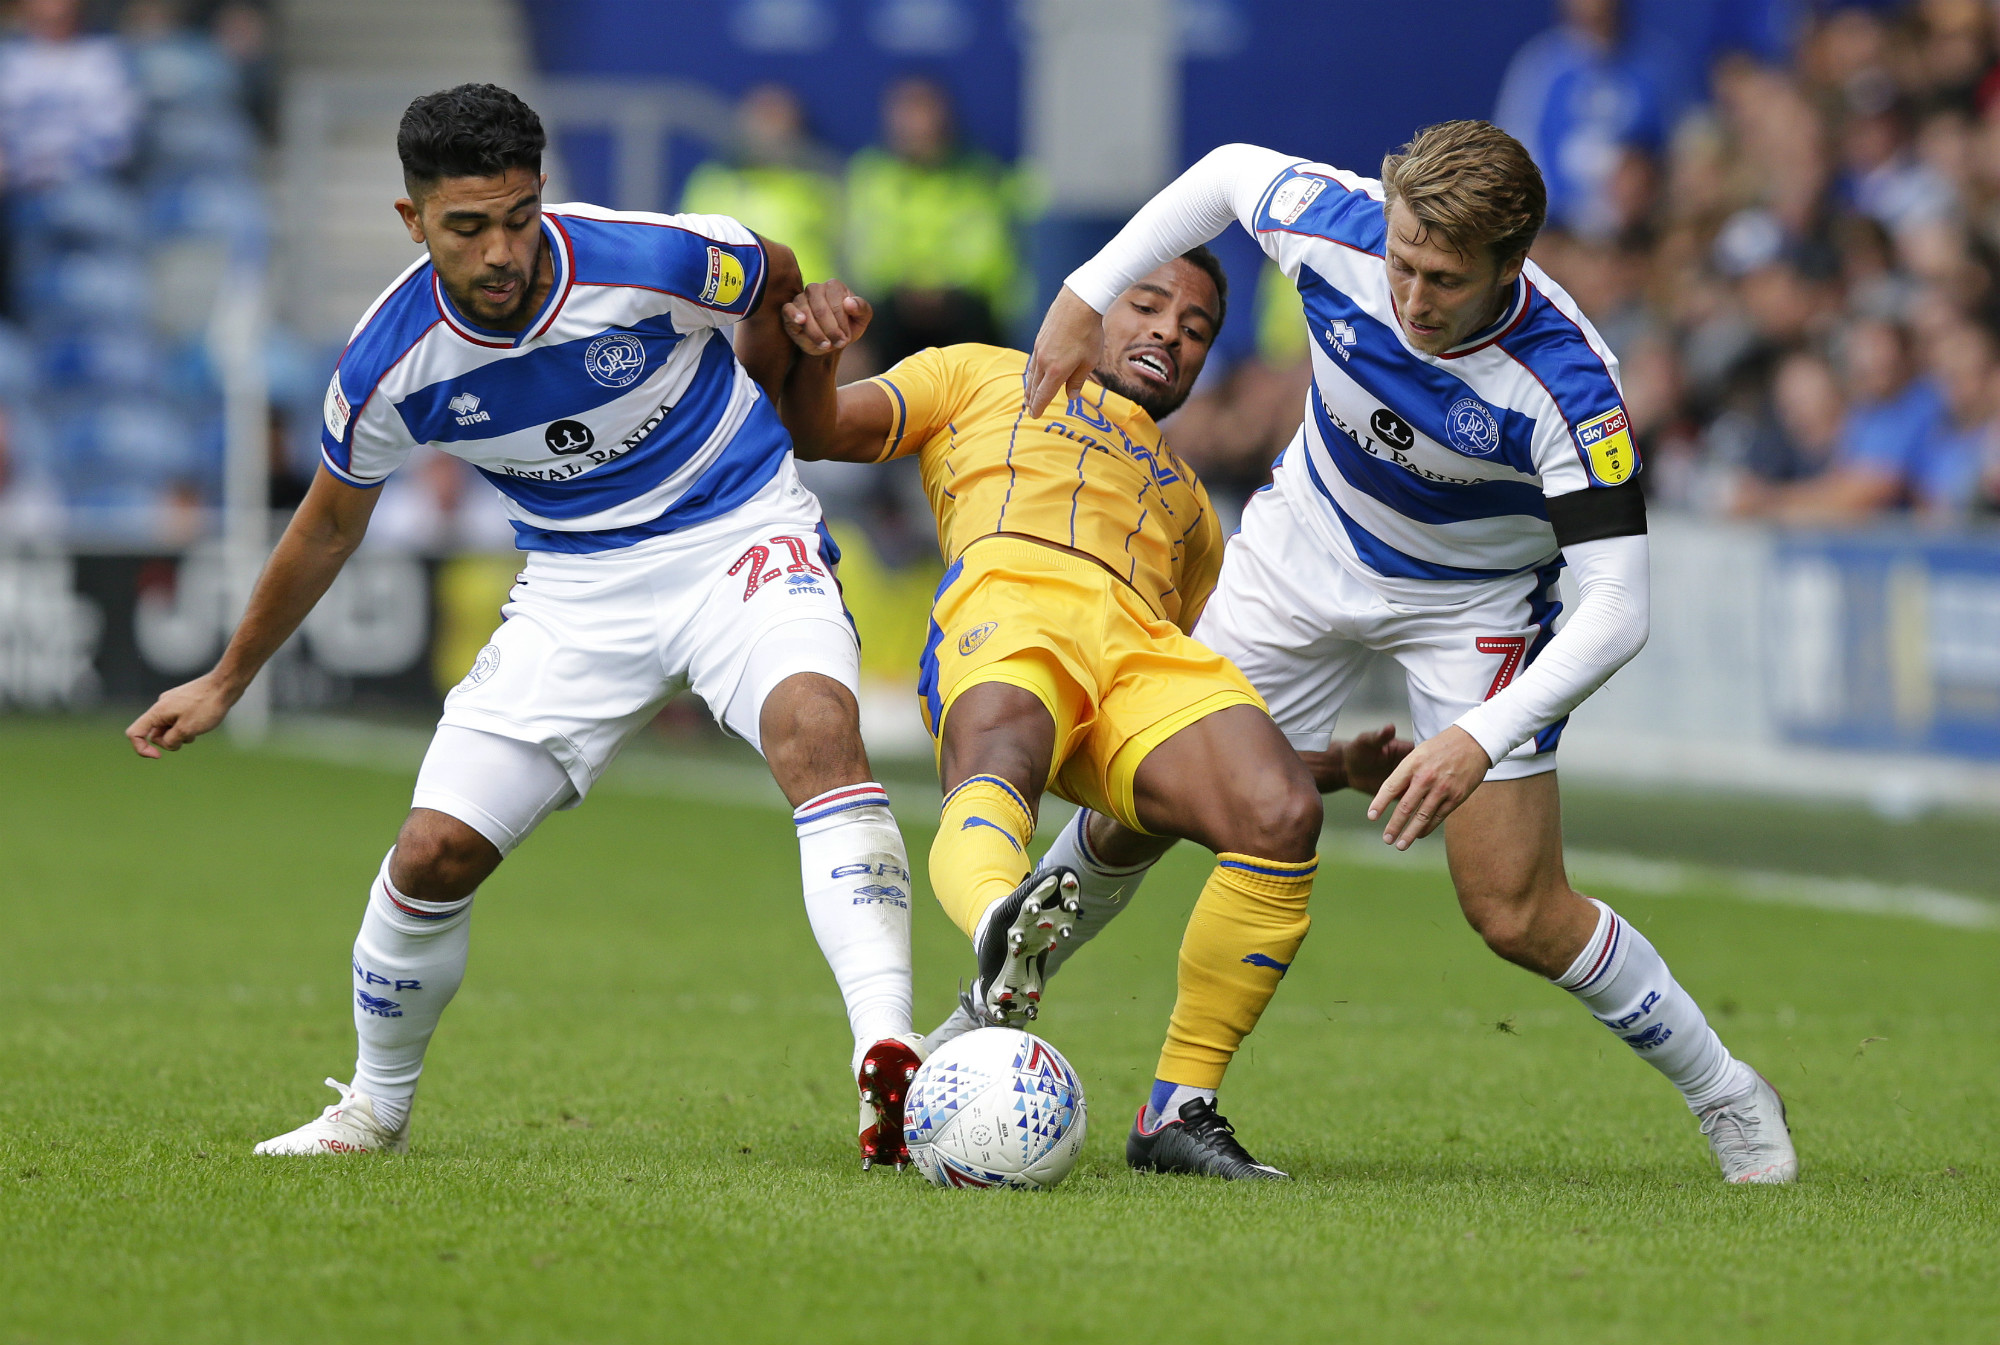 Luongo tackles against Wigan